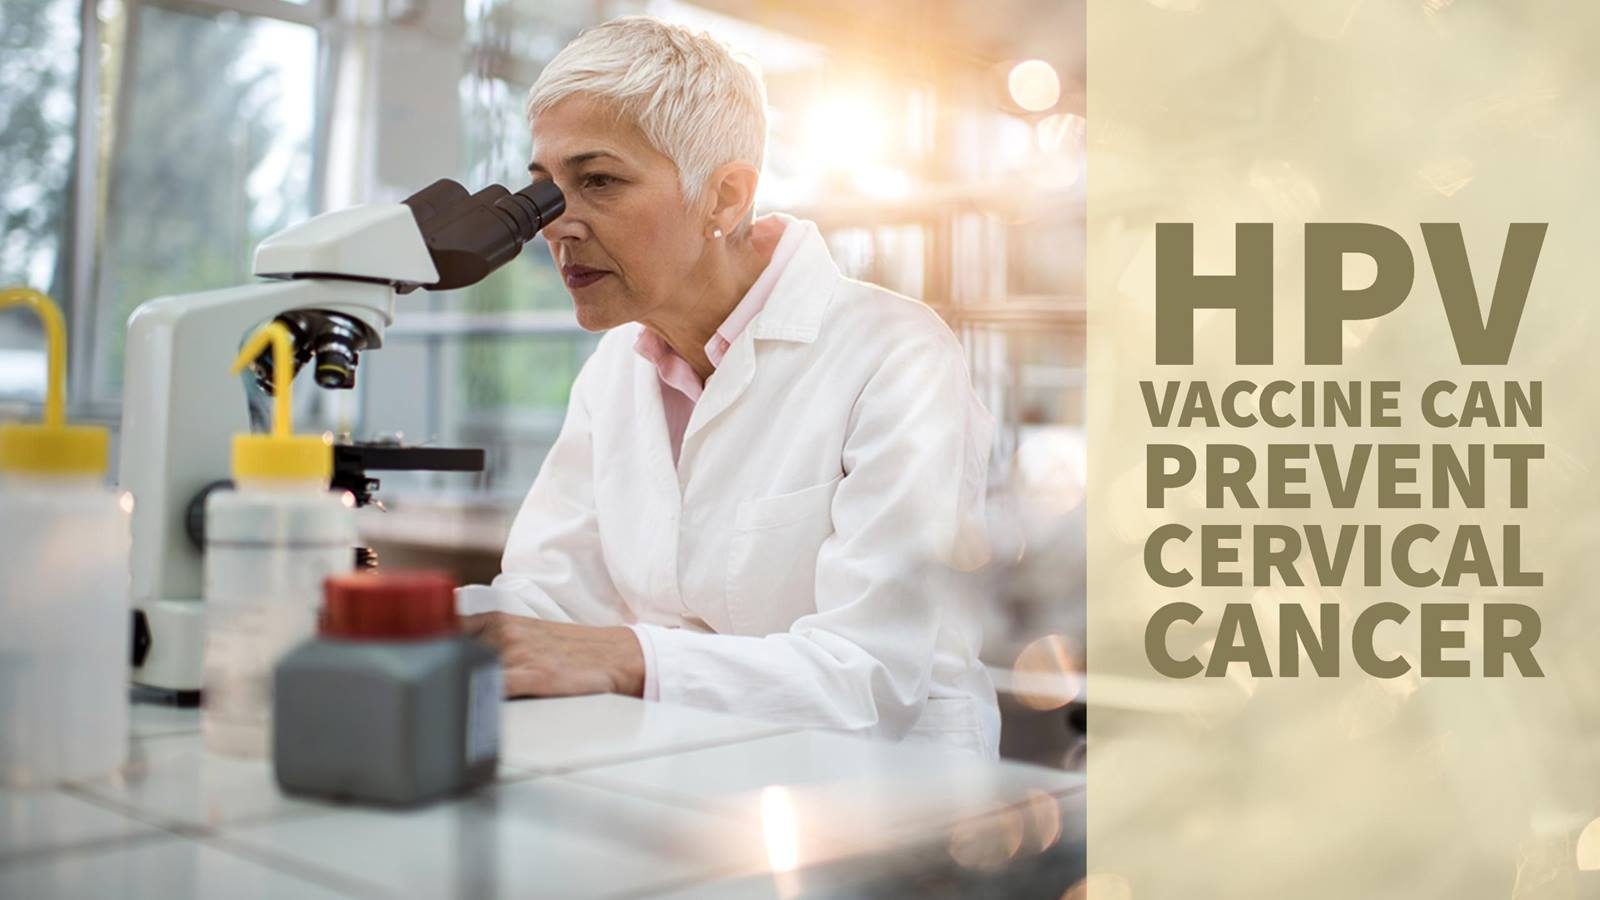 Hpv Vaccine Can Prevent Cervical Cancer